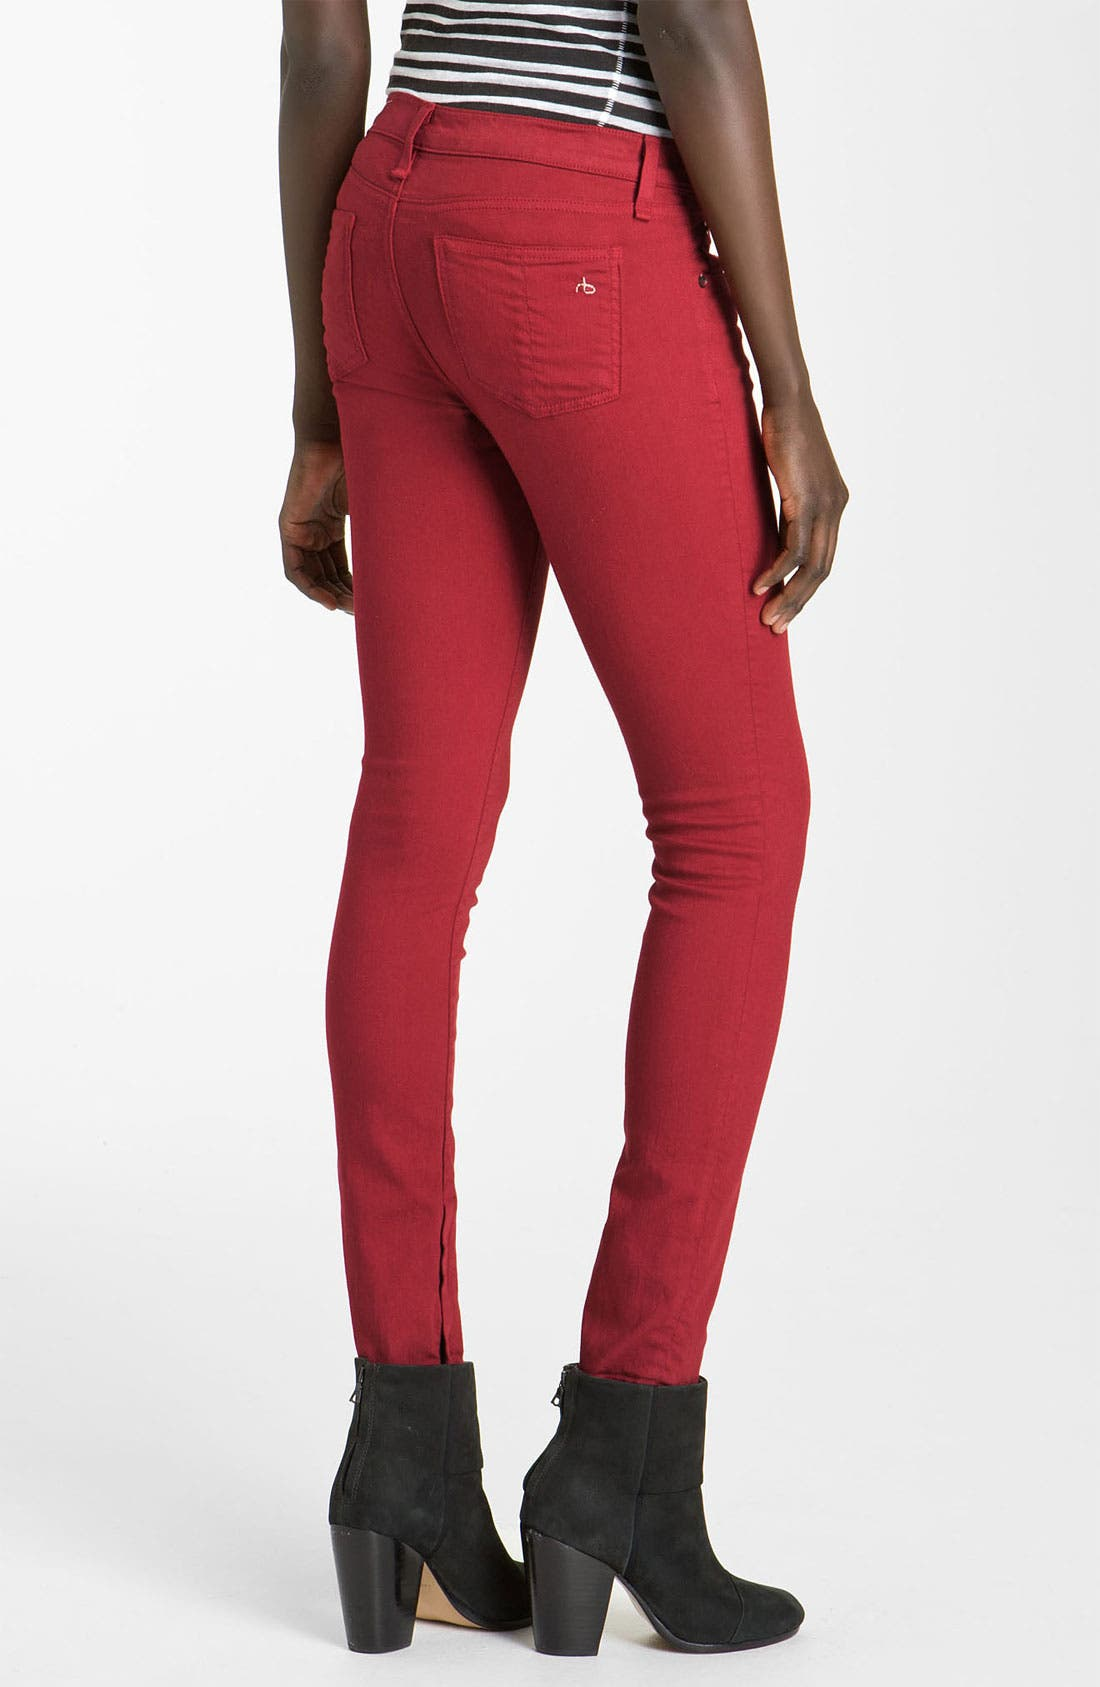 RAG & BONE, JEAN Skinny Zip Detail Stretch Jeans, Alternate thumbnail 3, color, 600